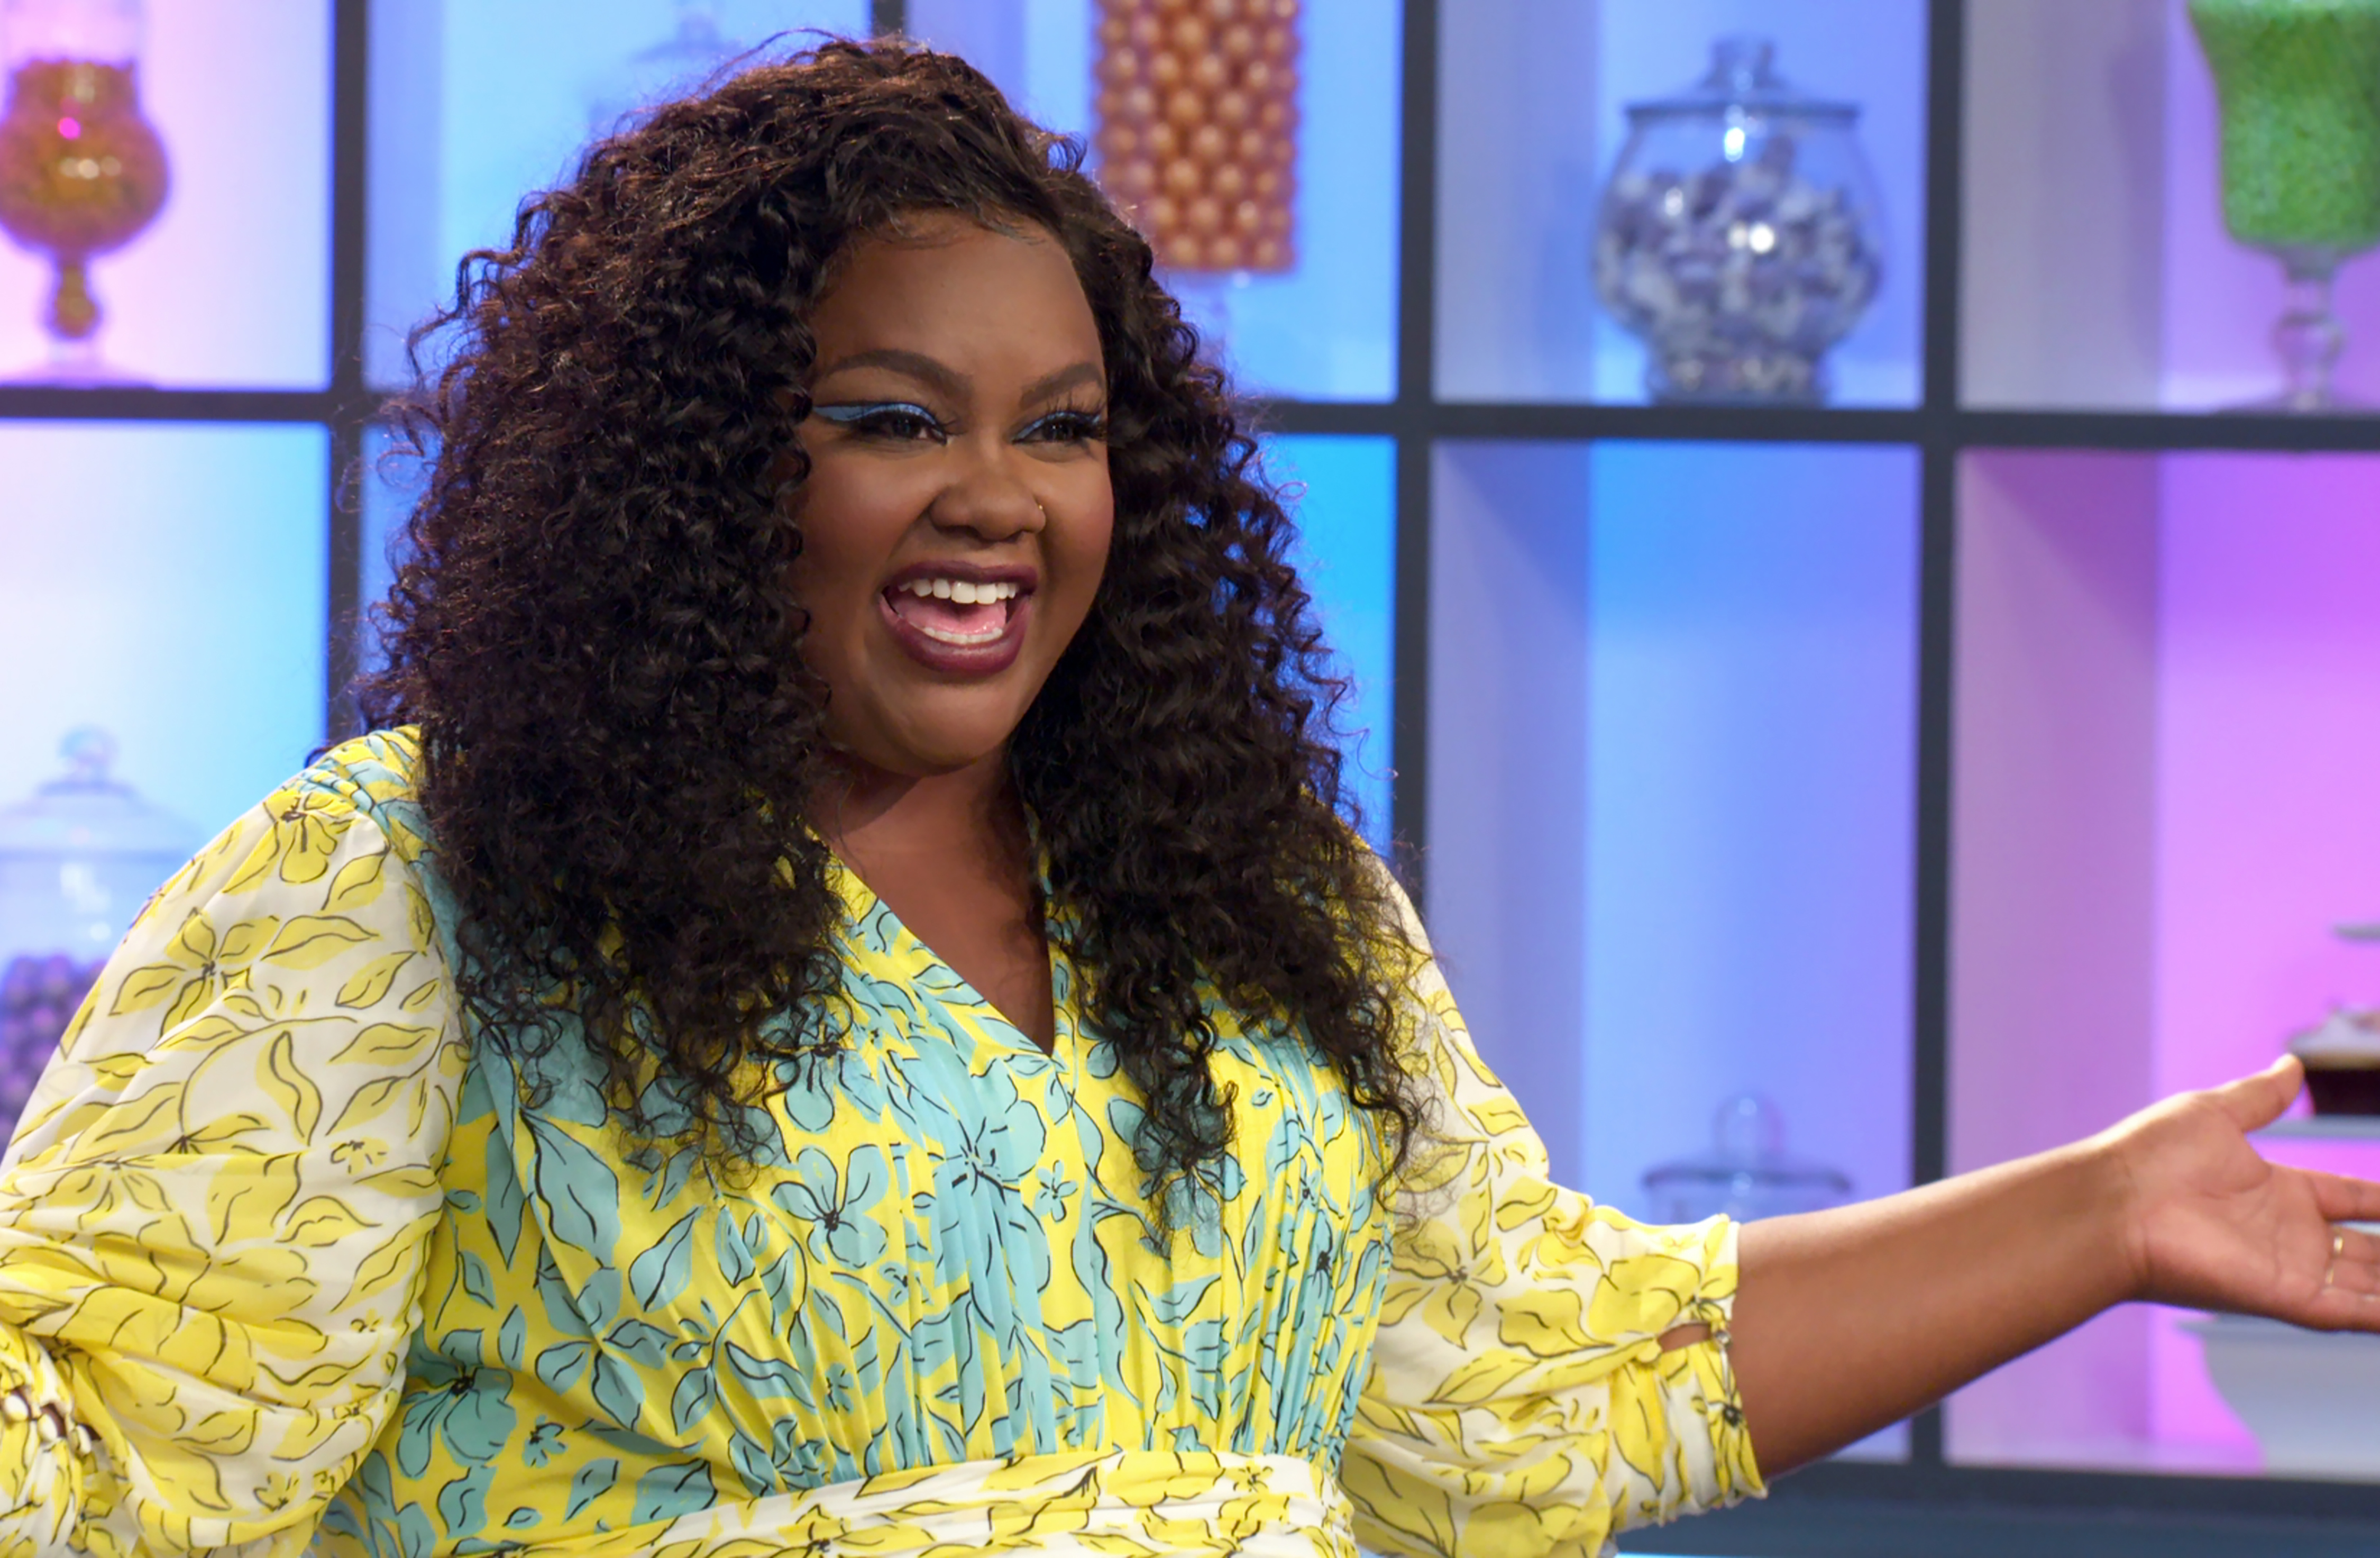 Nicole Byer stands in front of a multi-colored screen wearing a floral yellow and blue dress